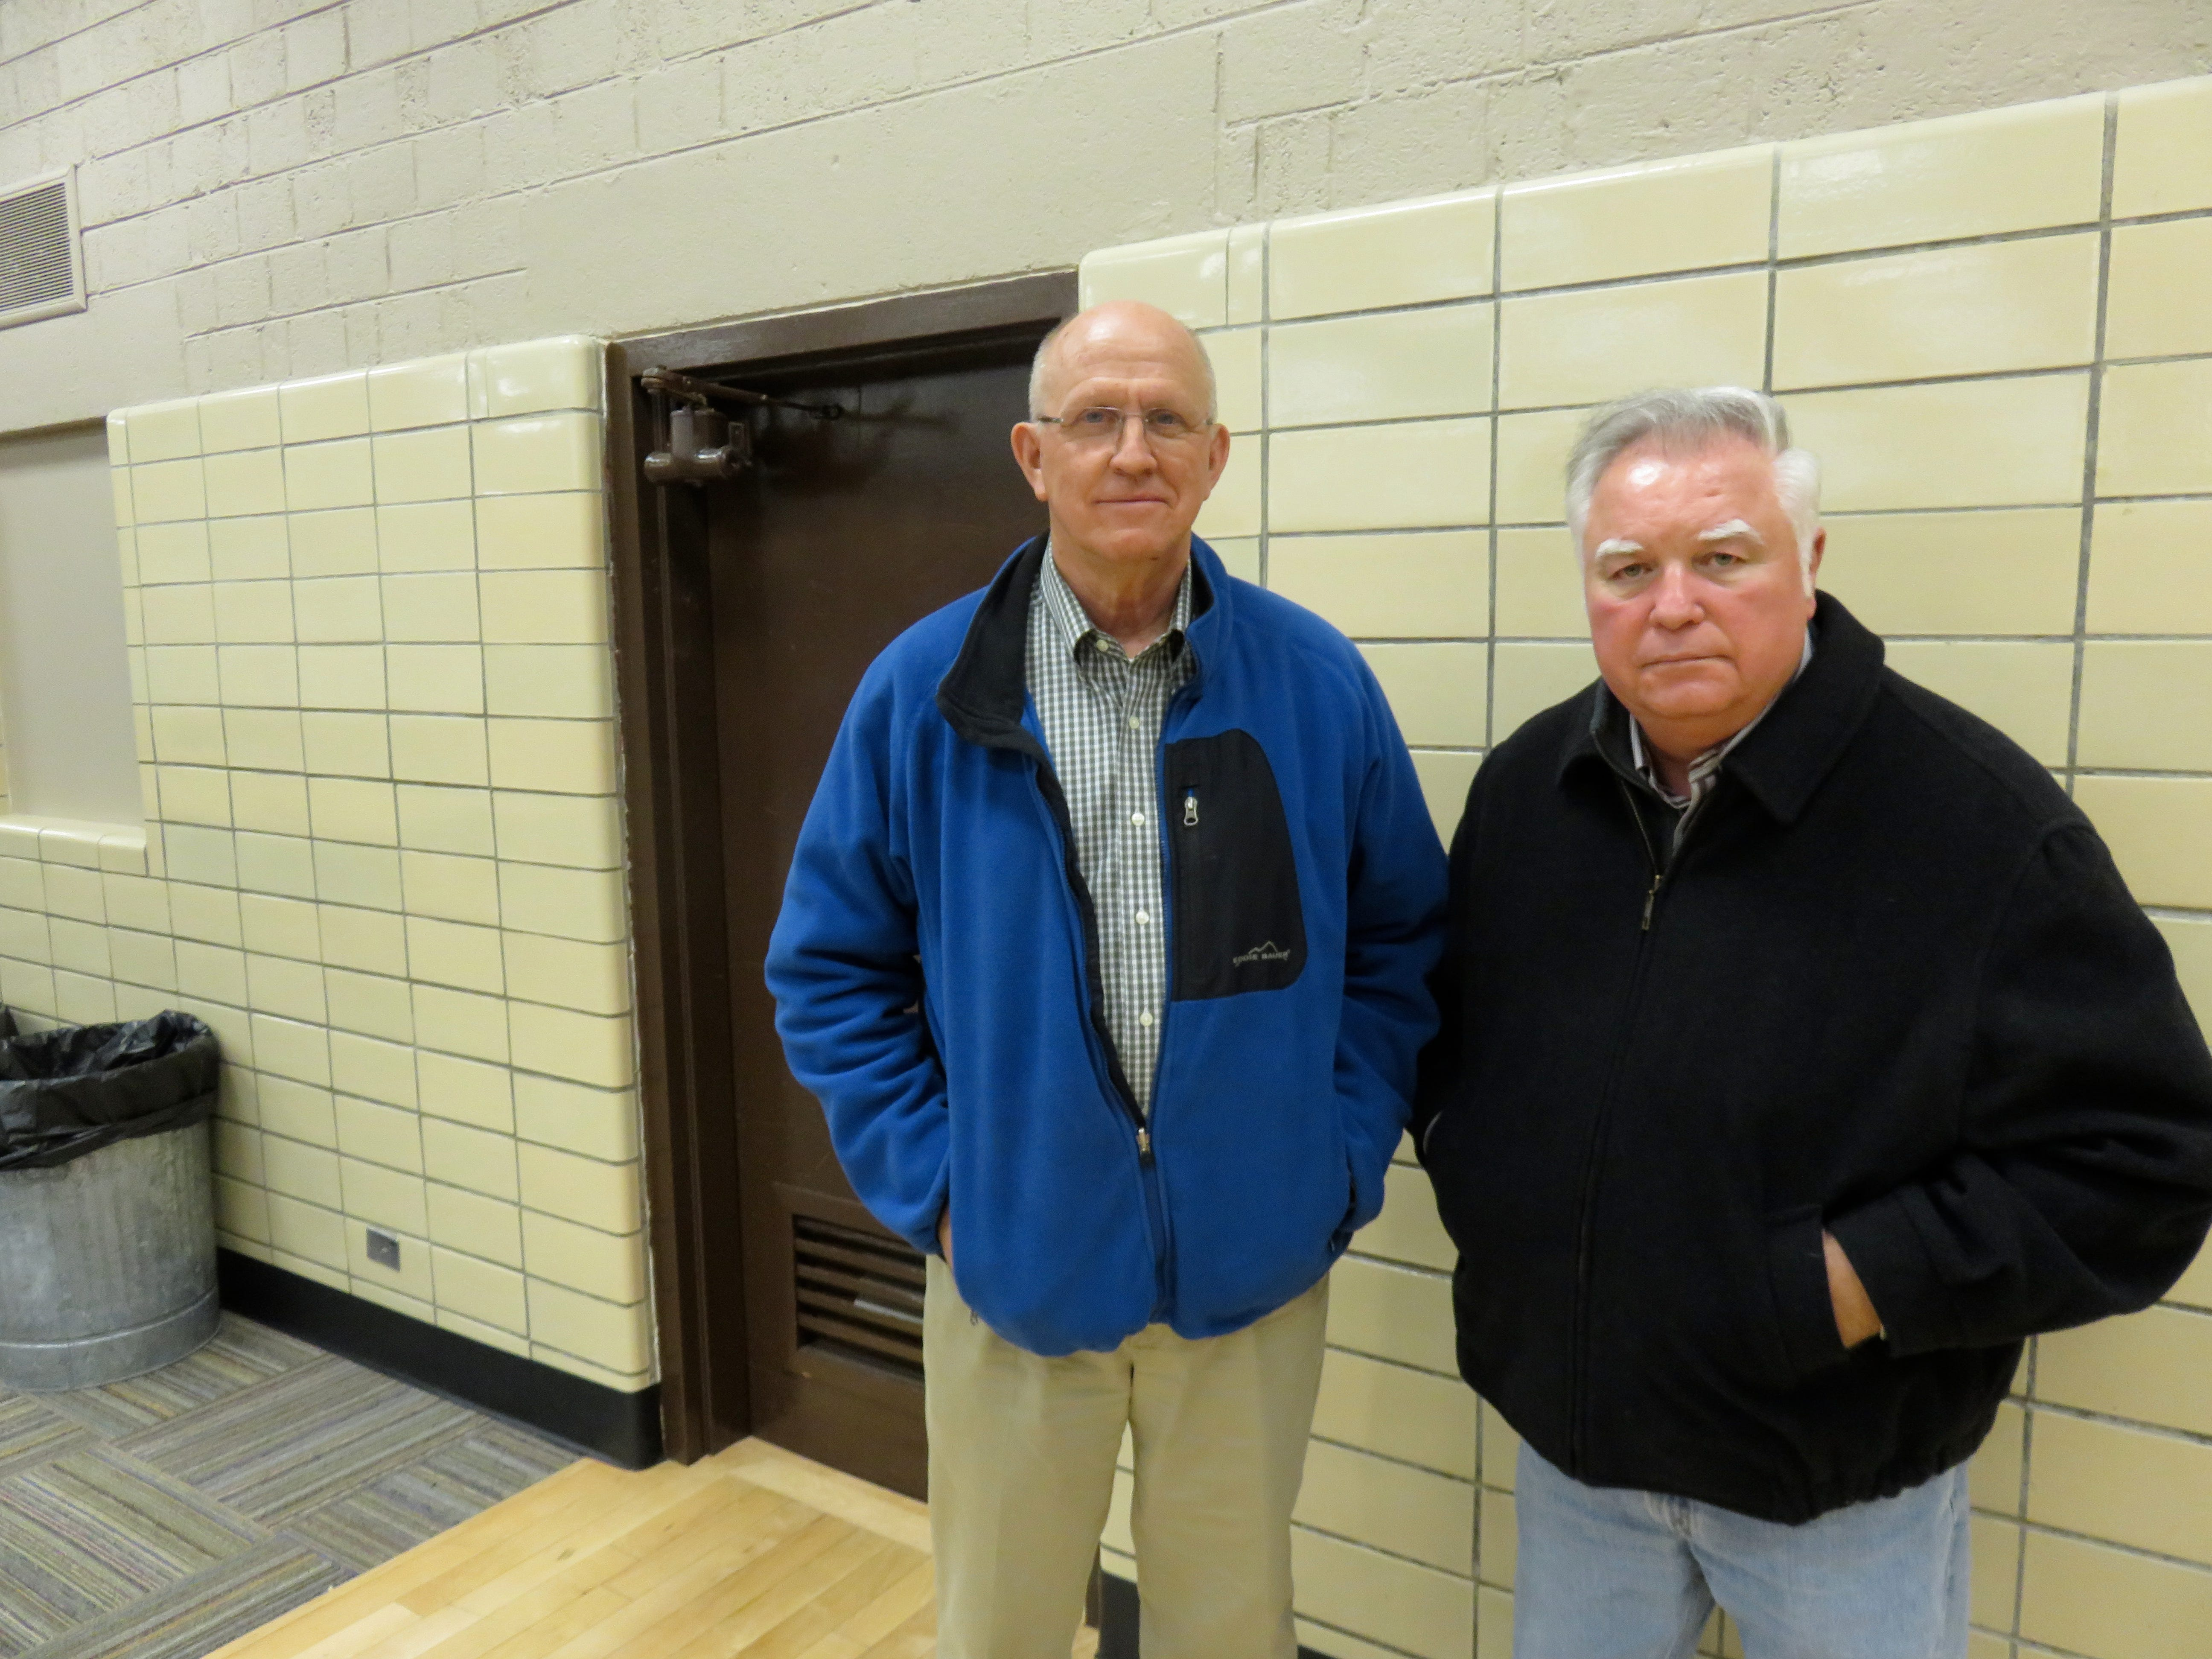 South High School graduates Bill Young, left, and Jack Jones are pictured at their old school. They played in the first Knoxville high school basketball game between all-white and all-black teams when South hosted Austin High School on Nov. 21, 1964.